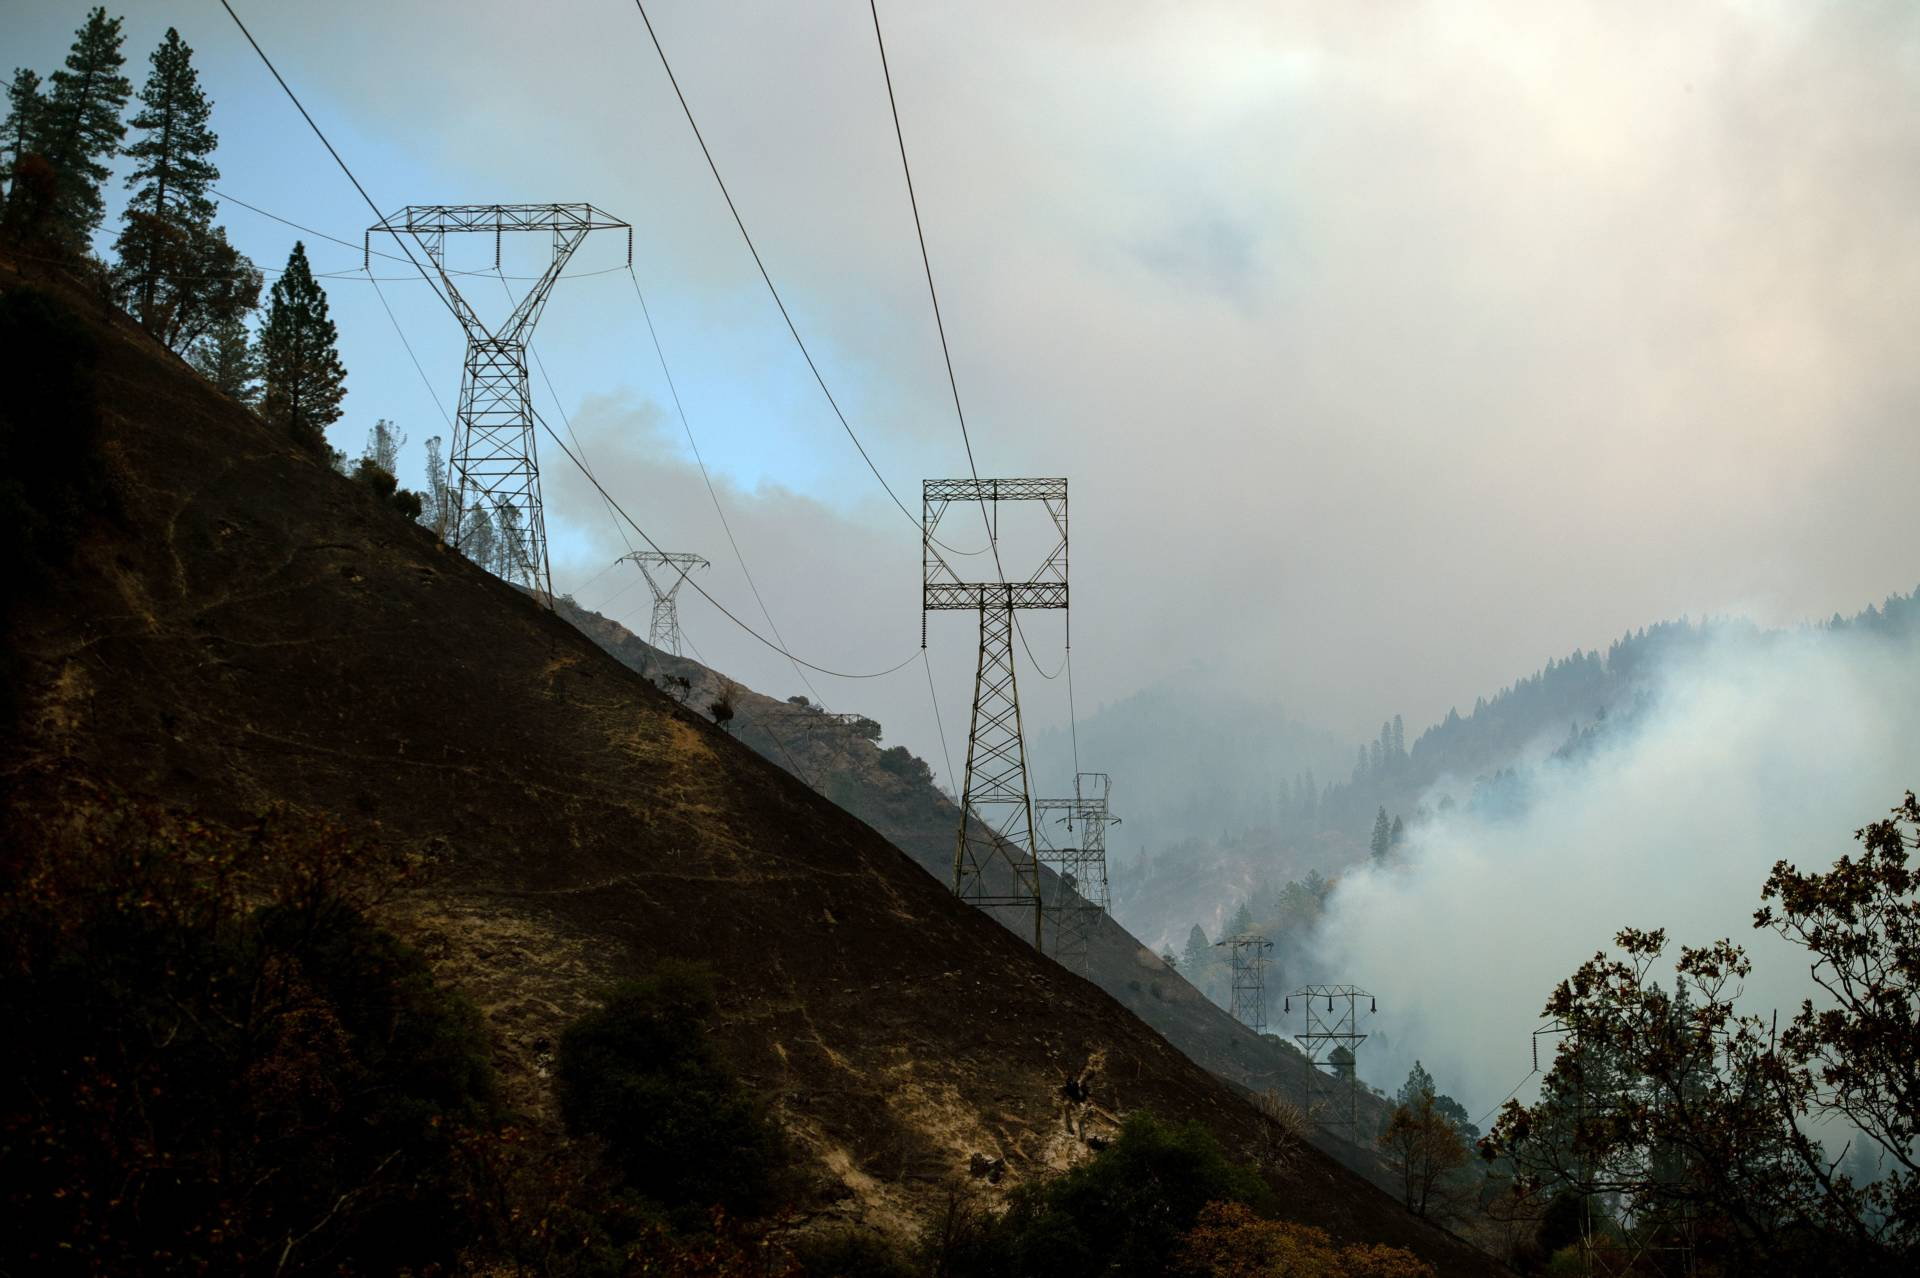 Report: PG&E Knew About Extensive Power Line Problems But Delayed Repairs for Years